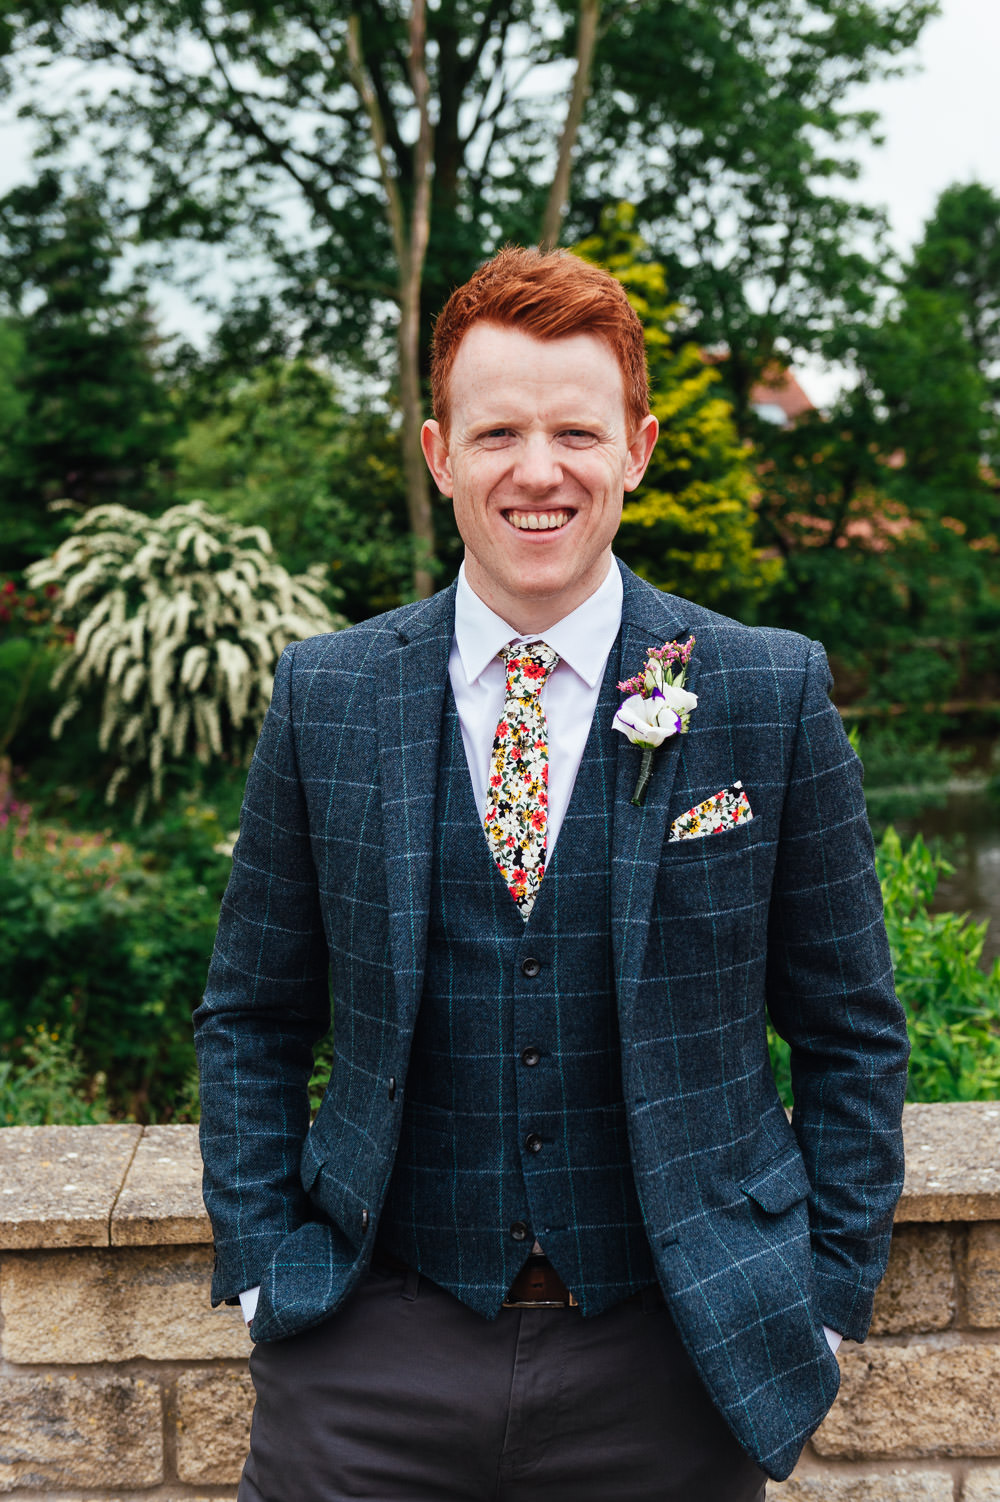 Groom Suit Blue Check Floral Tie Pocketsquare DIY Barn Wedding Jessica Grace Photography